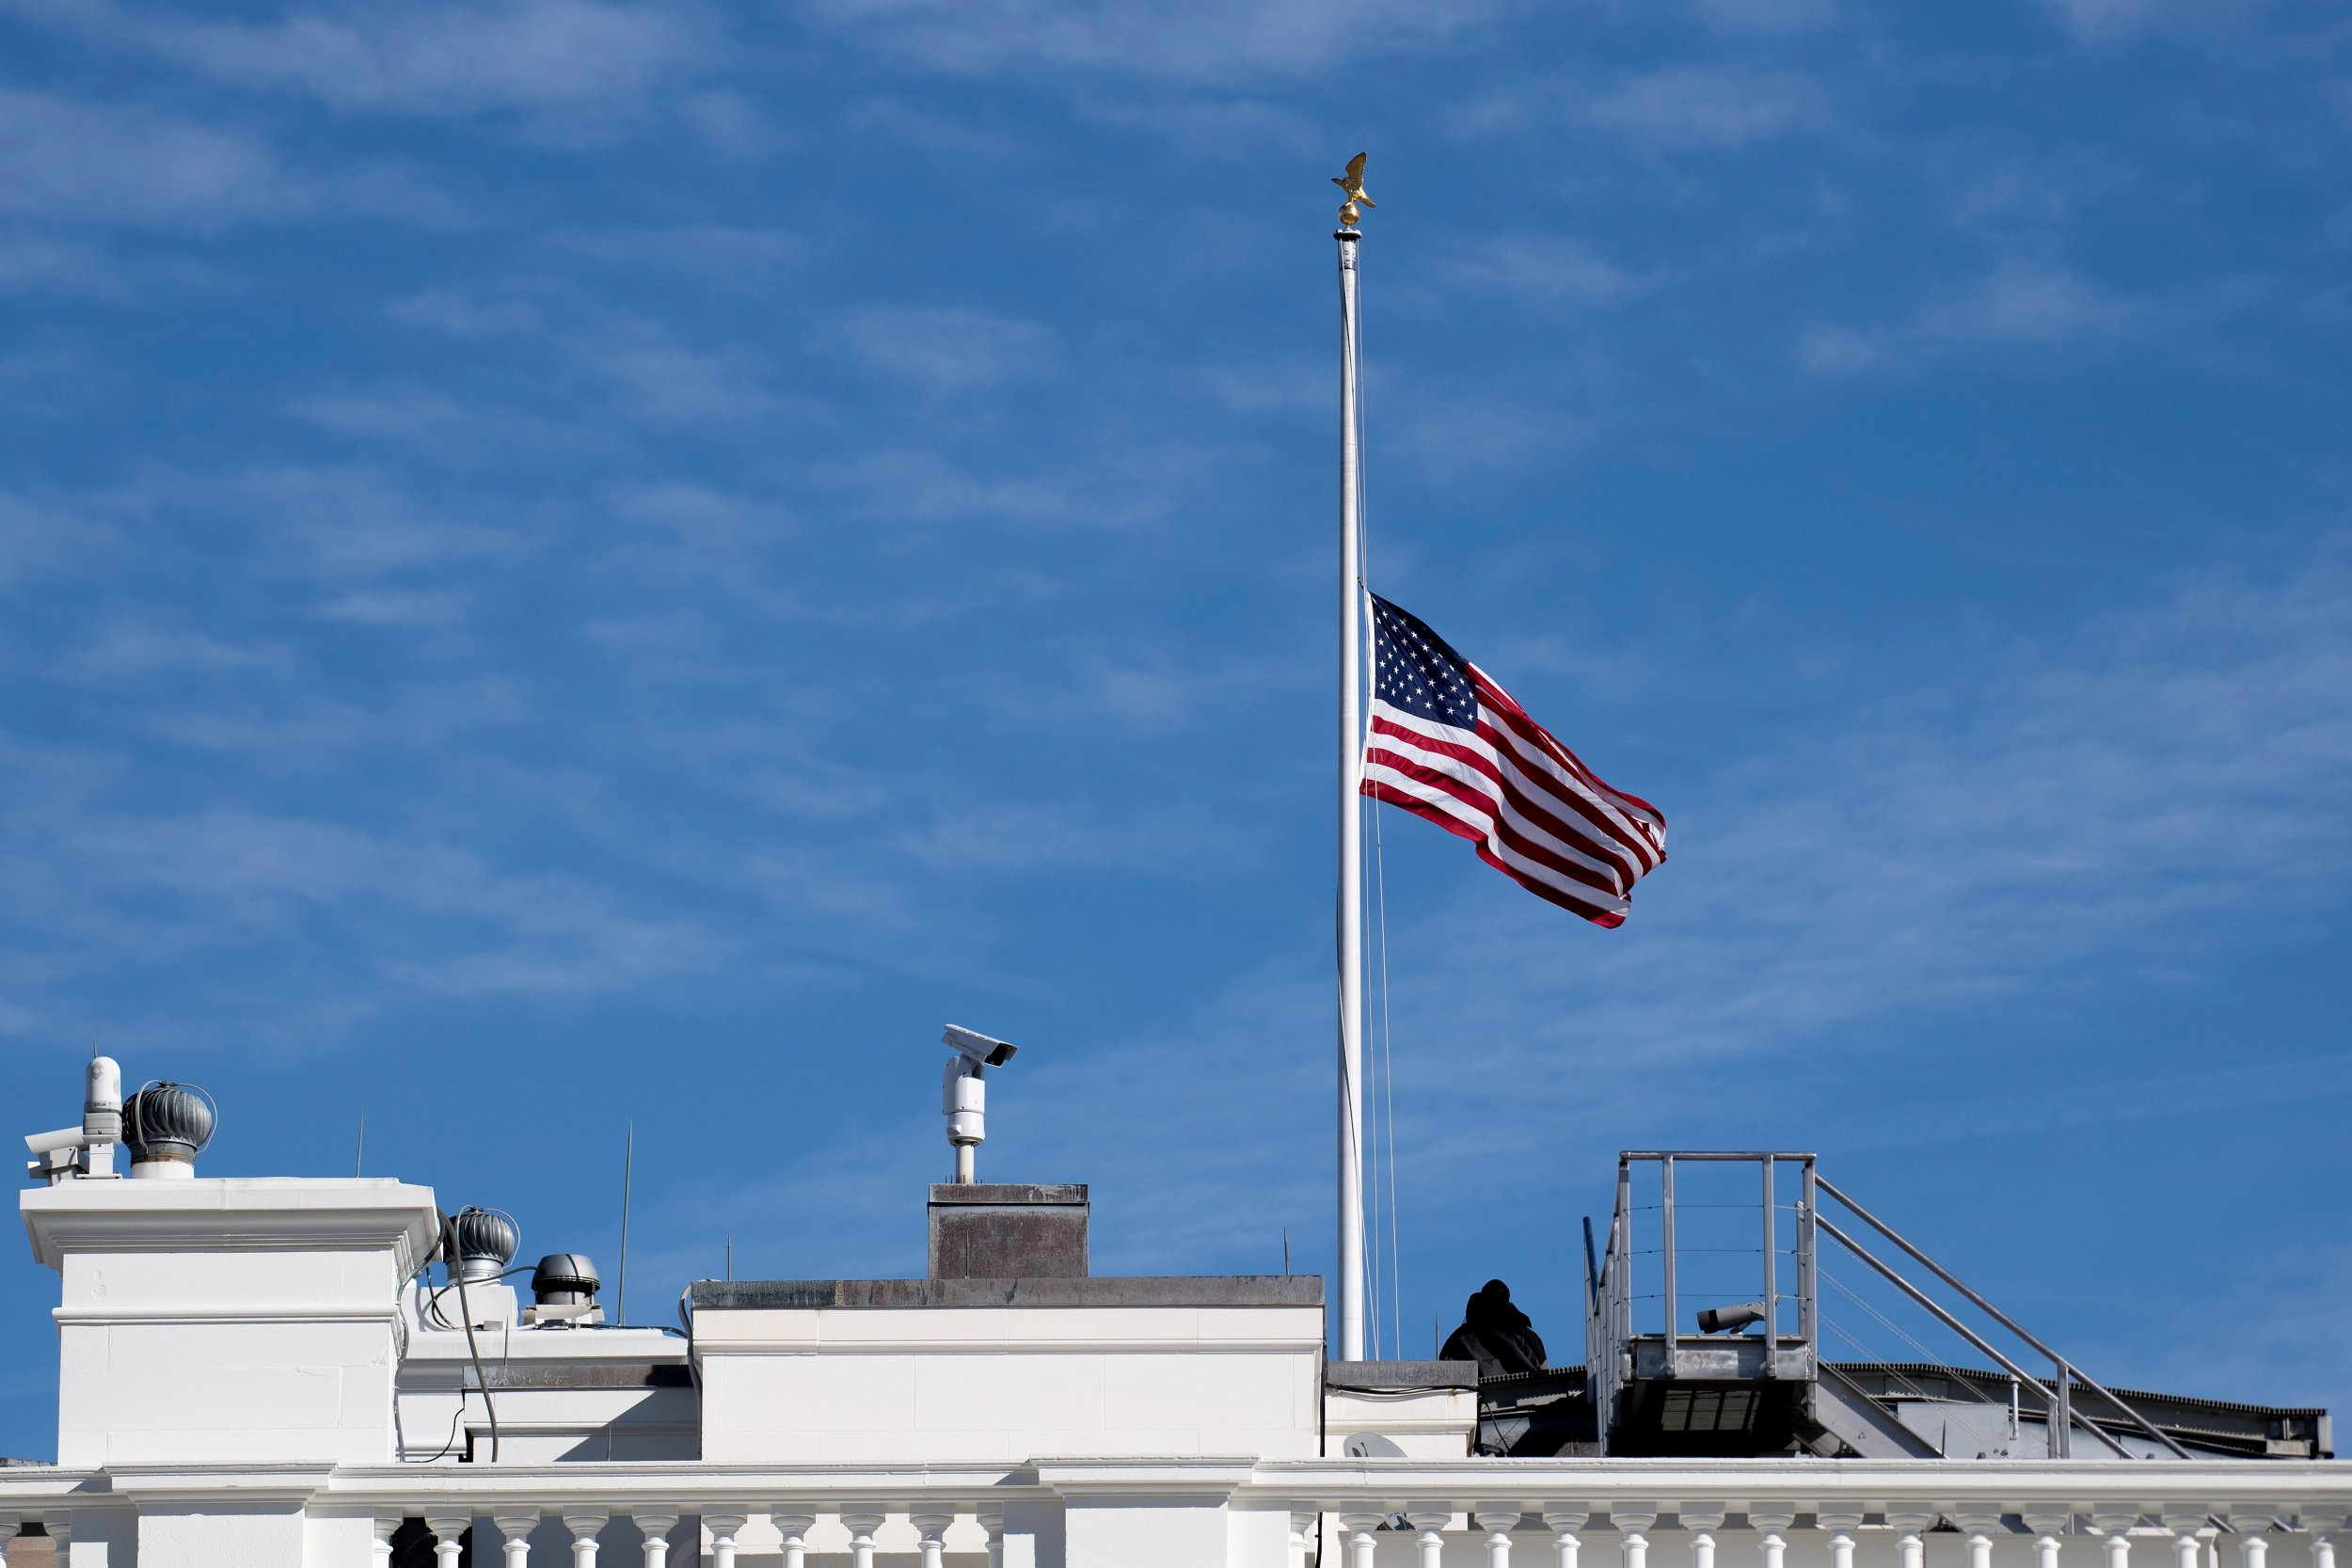 Miraculous Why Are The Flags At Half Staff Donald Trump Makes Order Download Free Architecture Designs Scobabritishbridgeorg